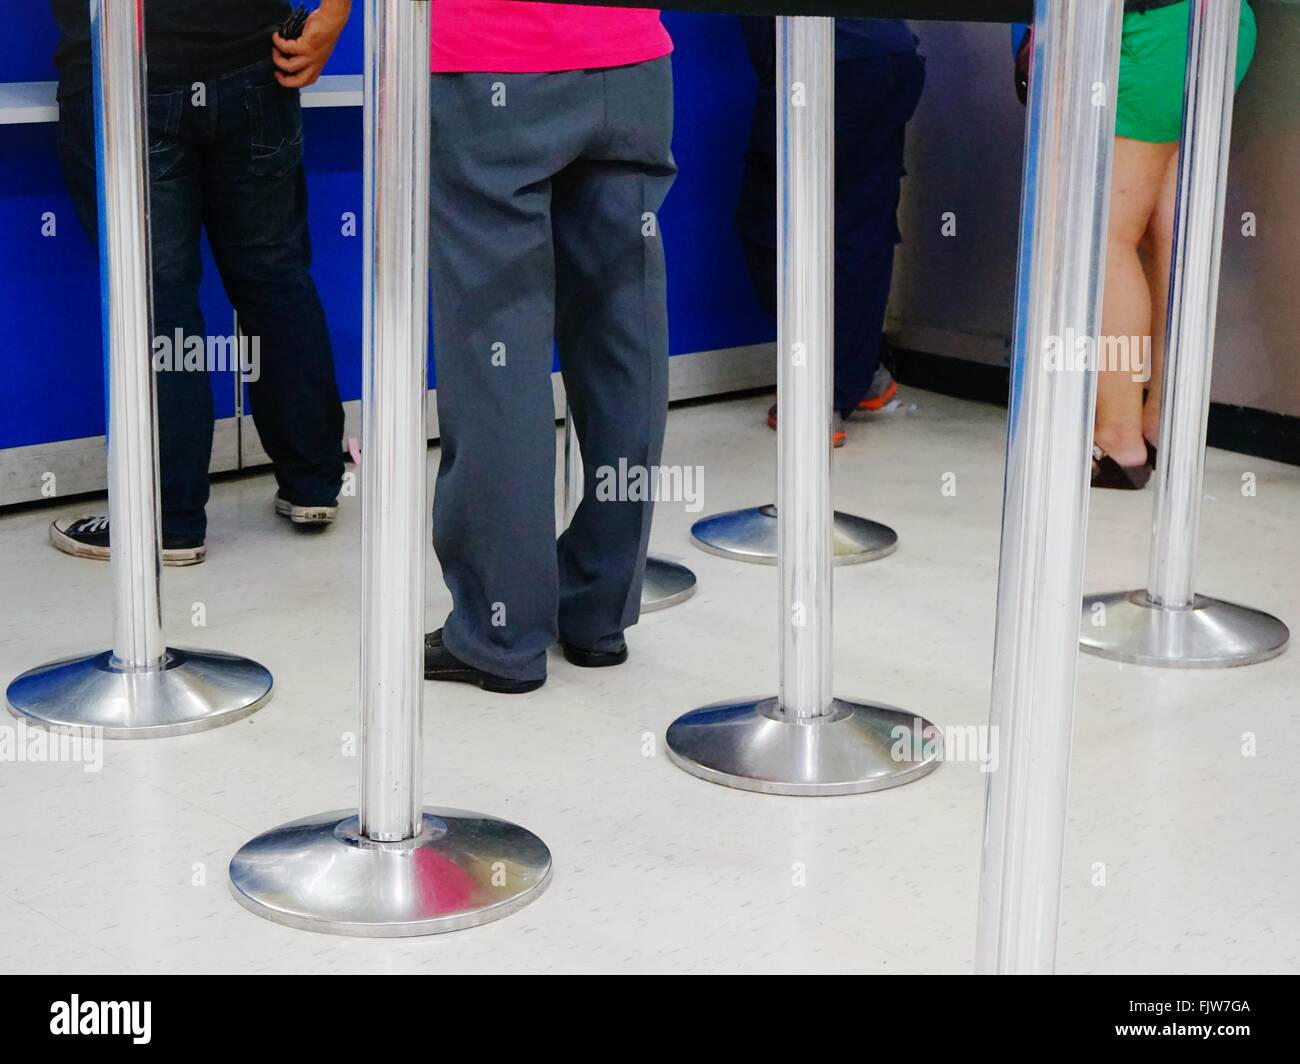 Low Section Of People With Metallic Stands - Stock Image